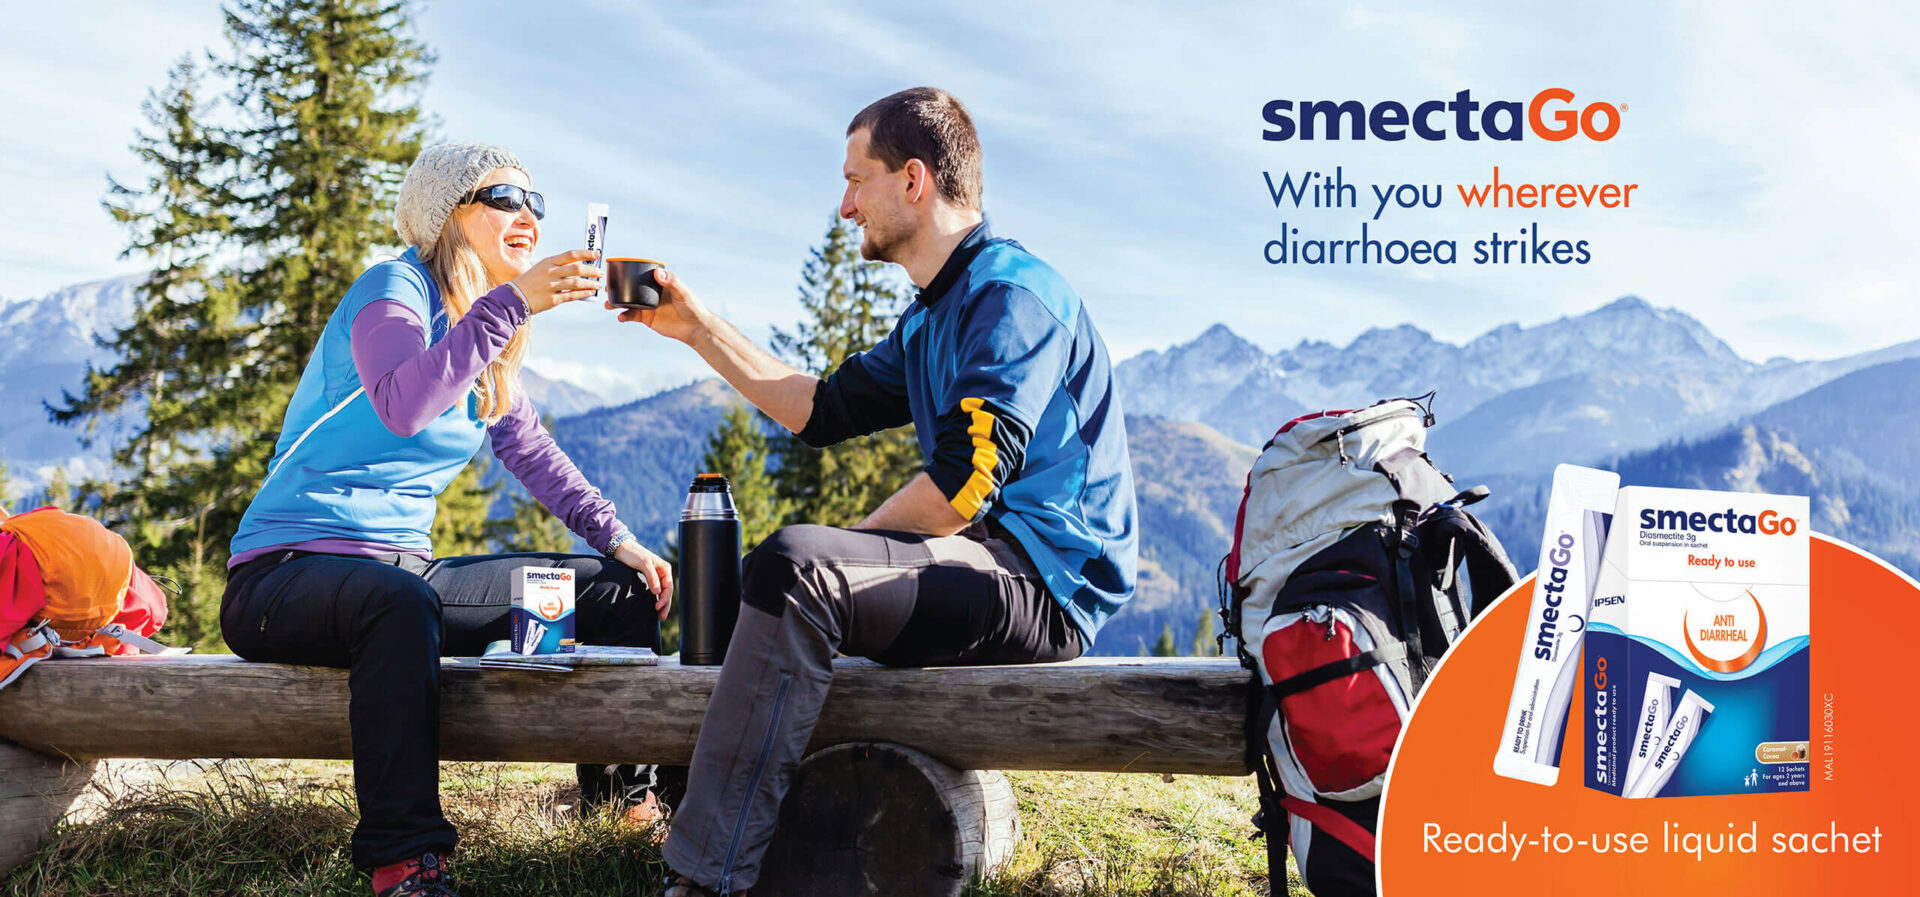 A lady holding a sachet of SmectaGo while the guy is holding a cup of coffee at a camping site.